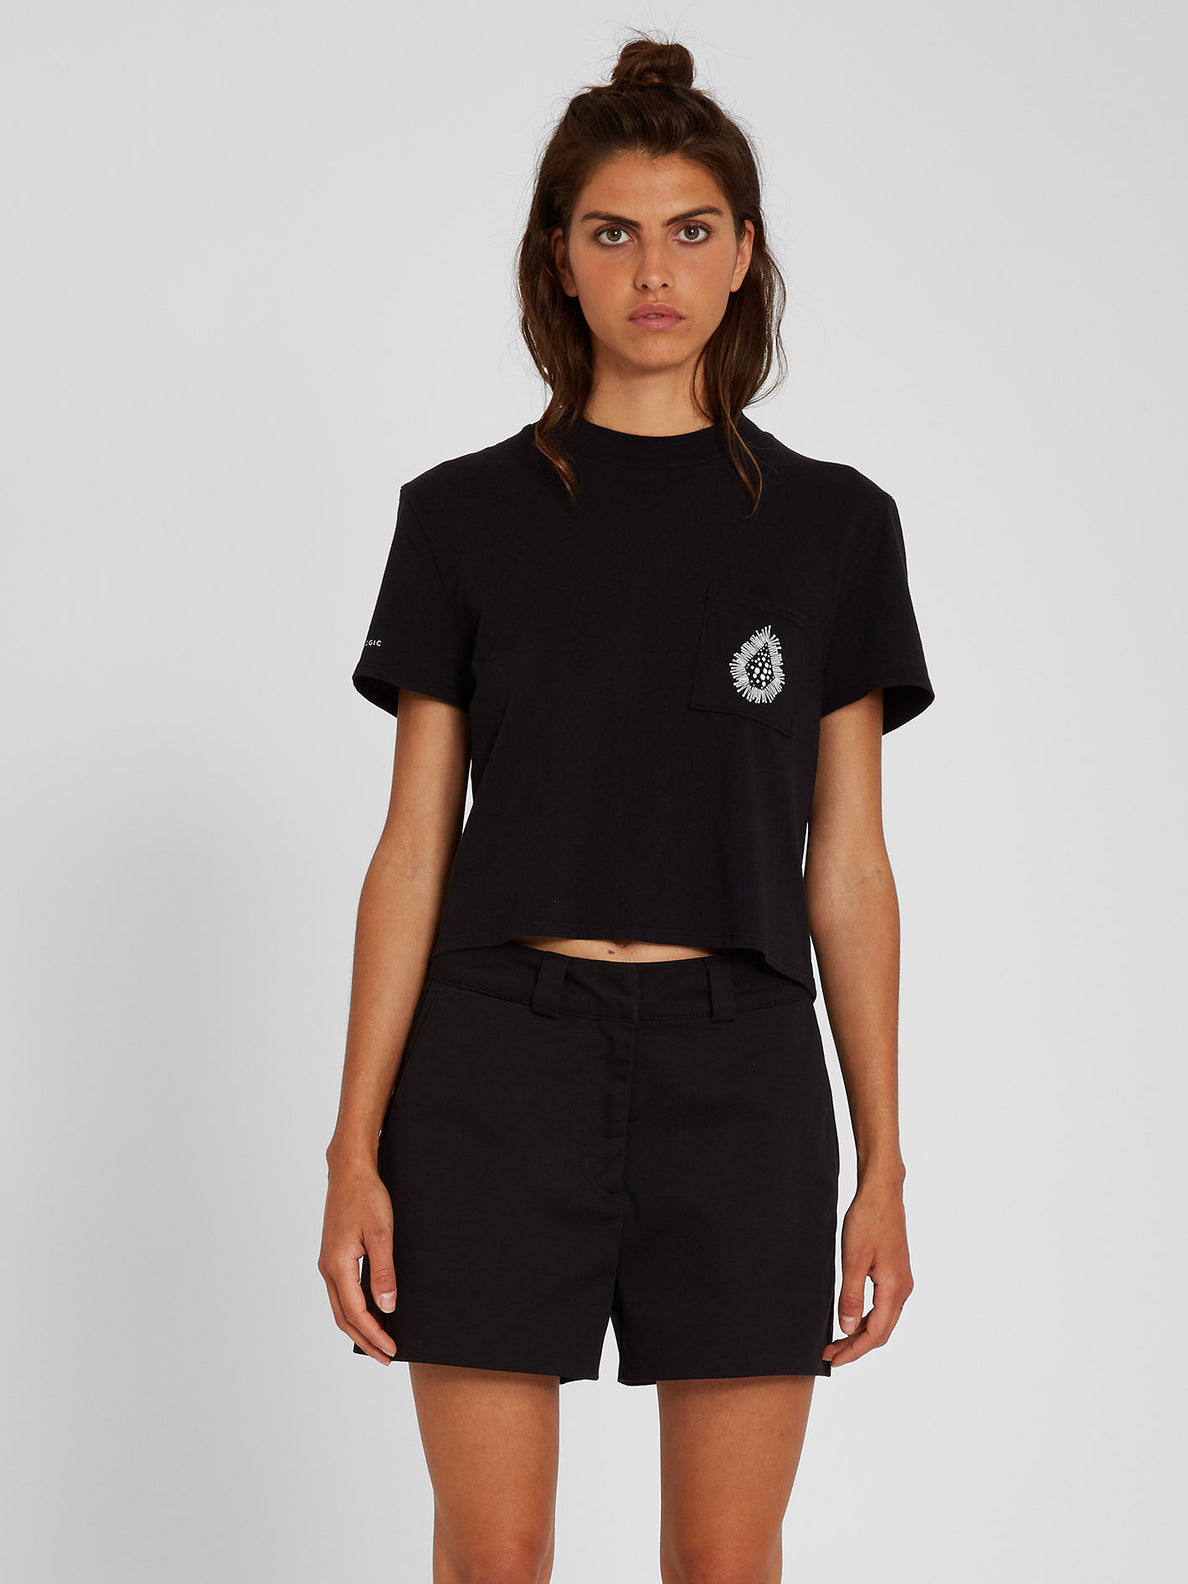 Whawhat Short - Black (B0912103_BLK) [5]